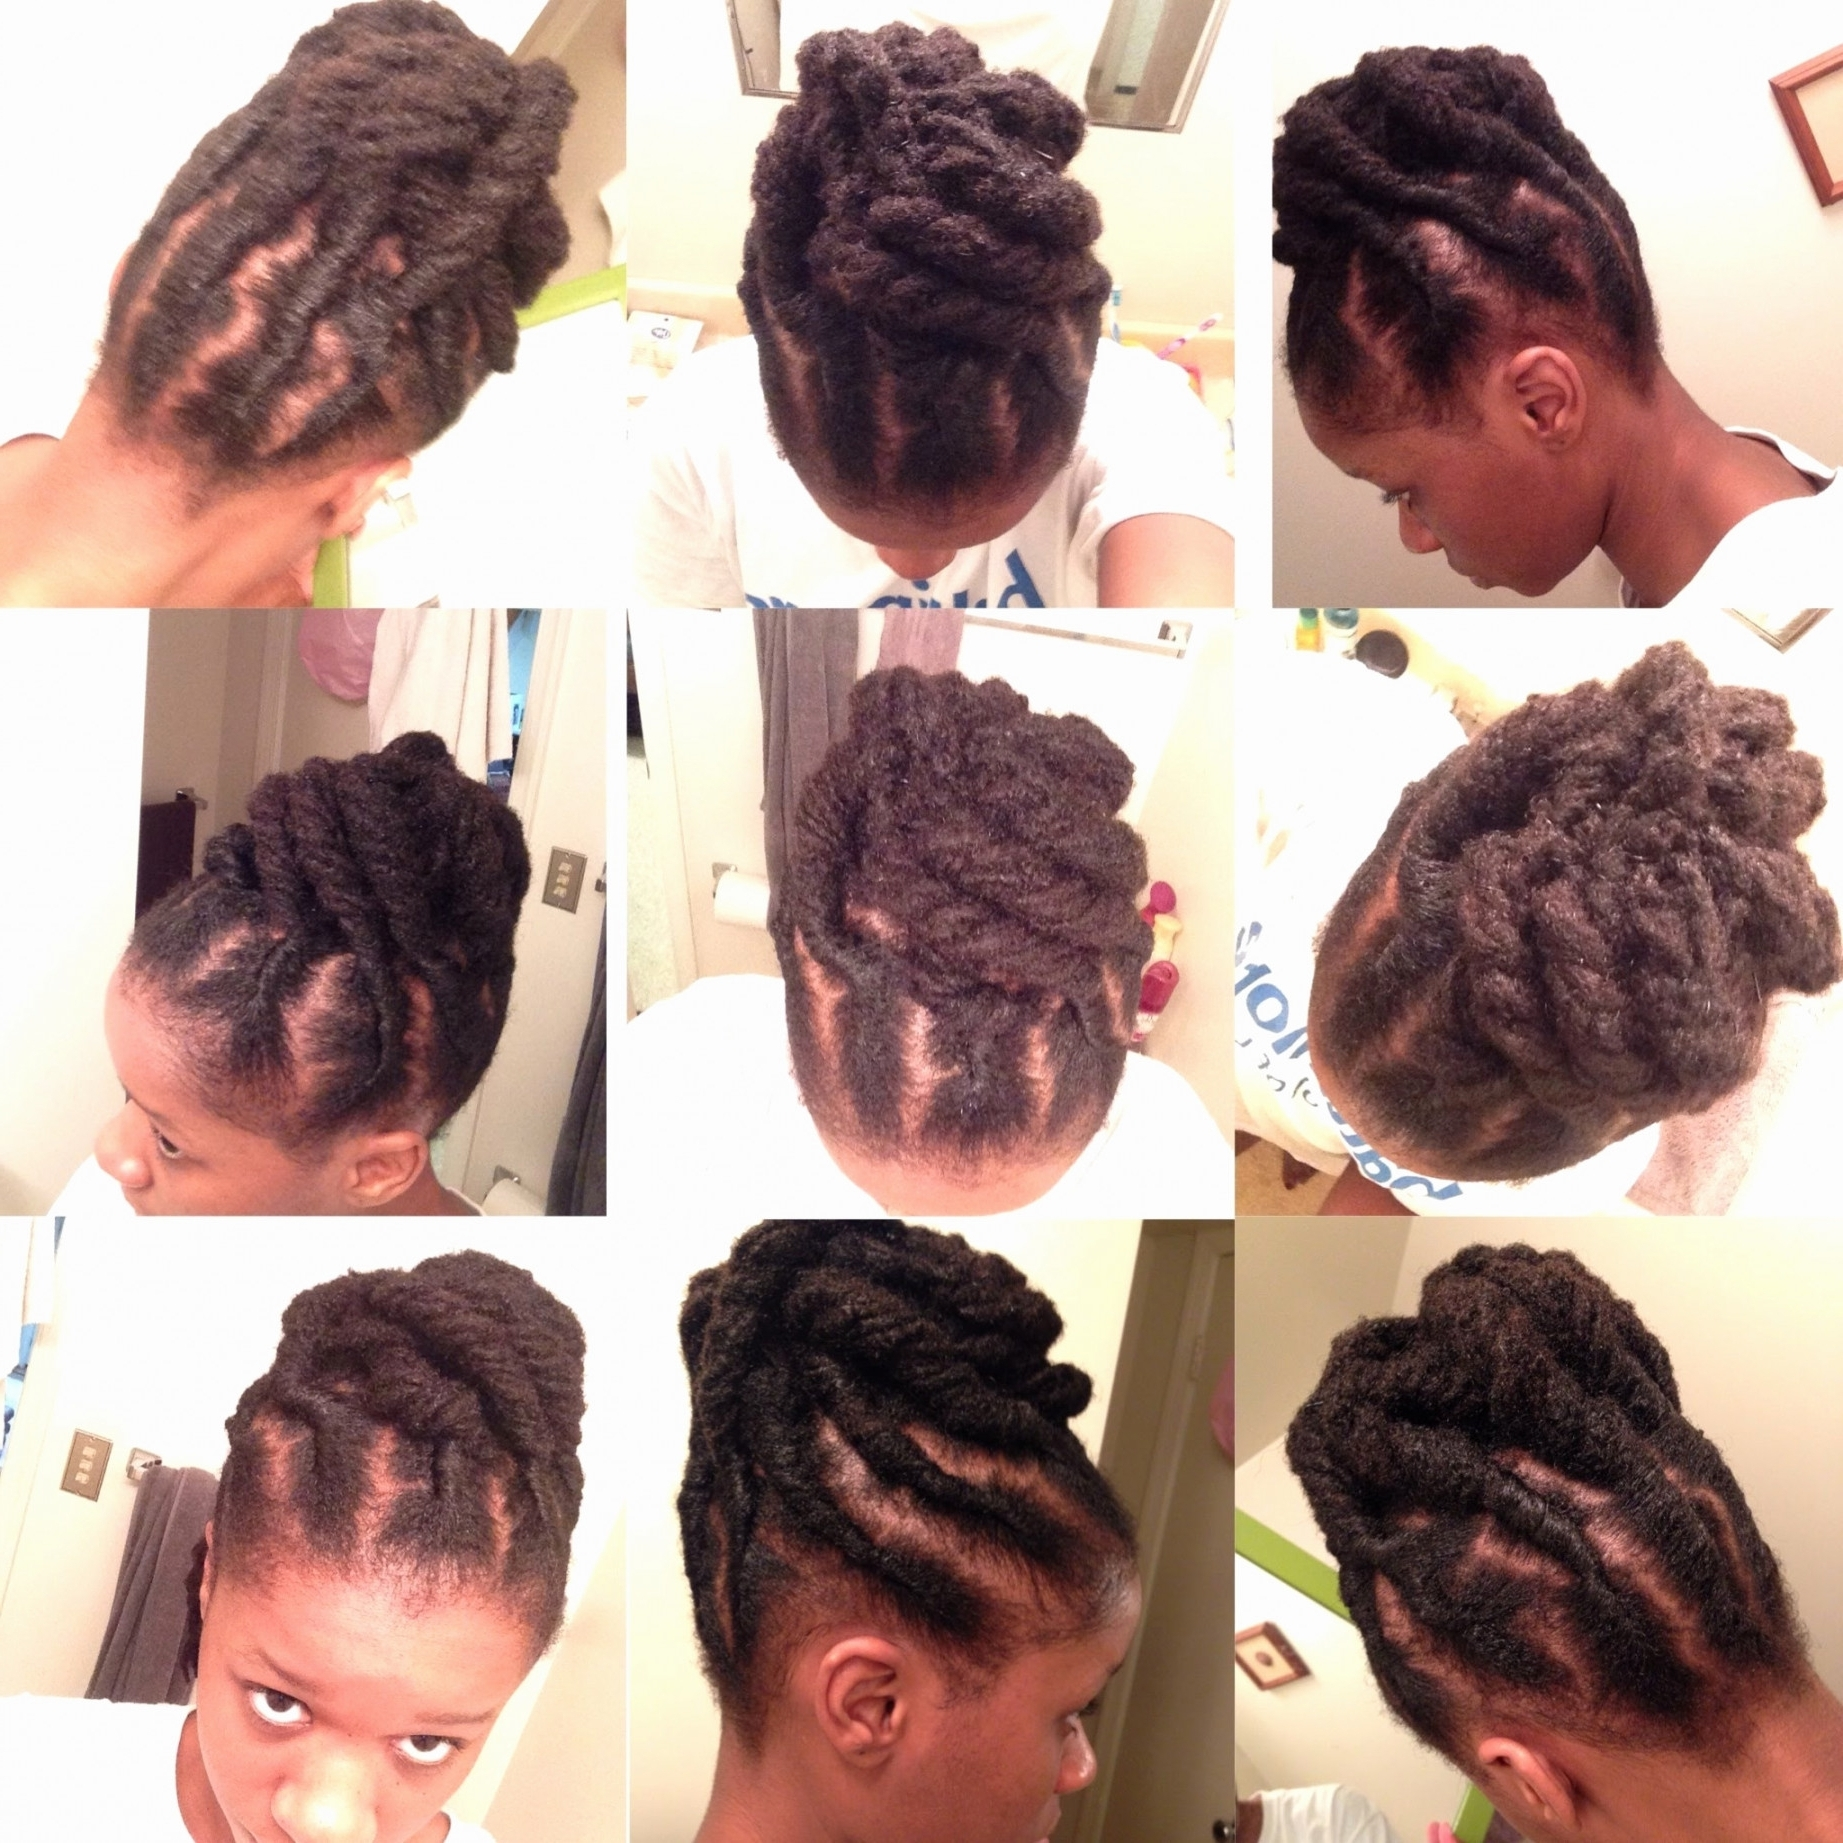 Hairstyles With Dreads For Men Elegant Quick Updo For Short Locs Intended For Updo Locs Hairstyles (View 7 of 15)